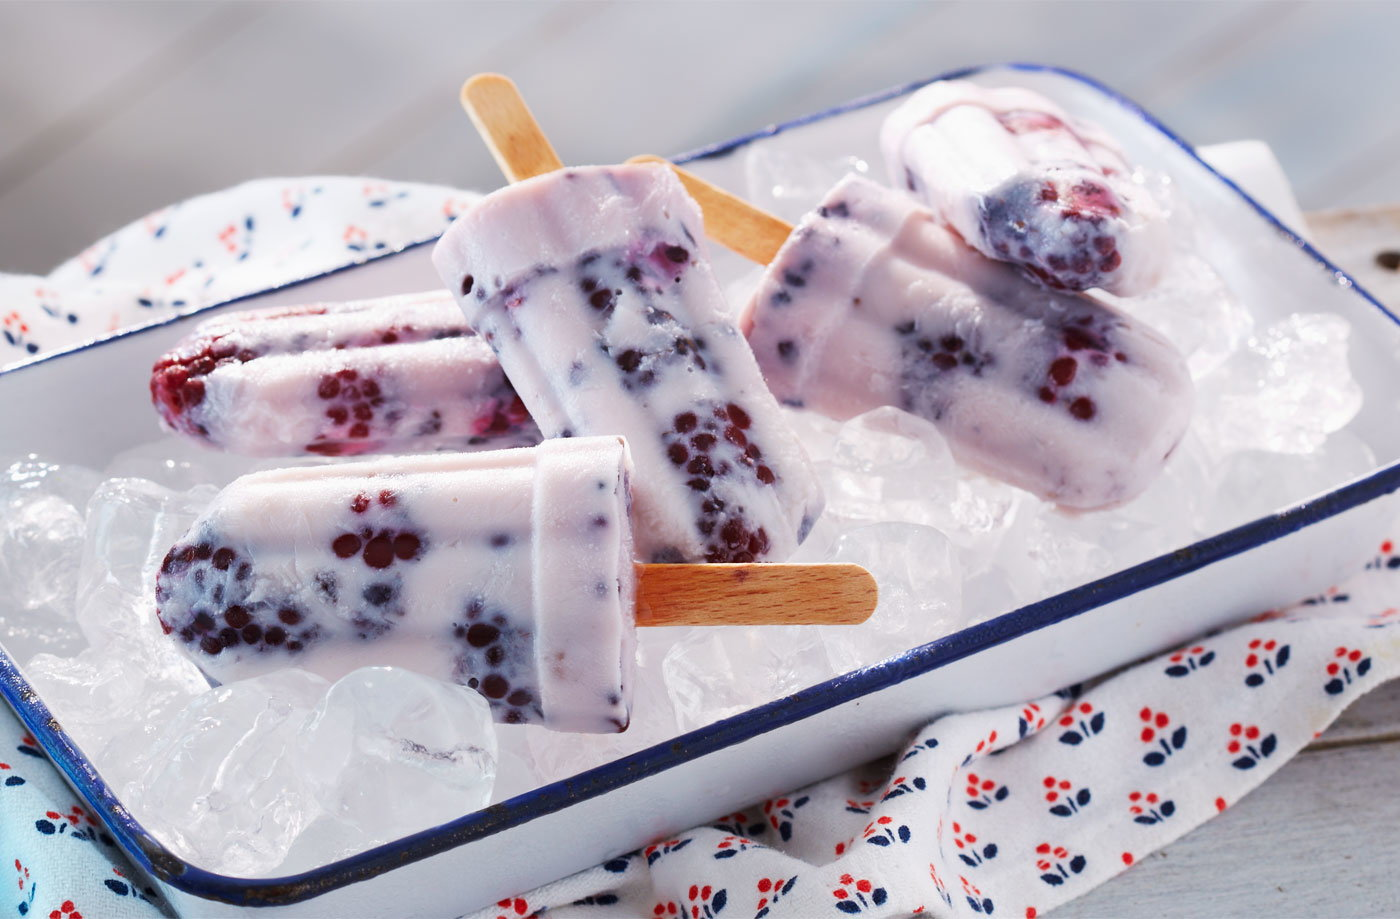 Milk ice lolly with blackberries